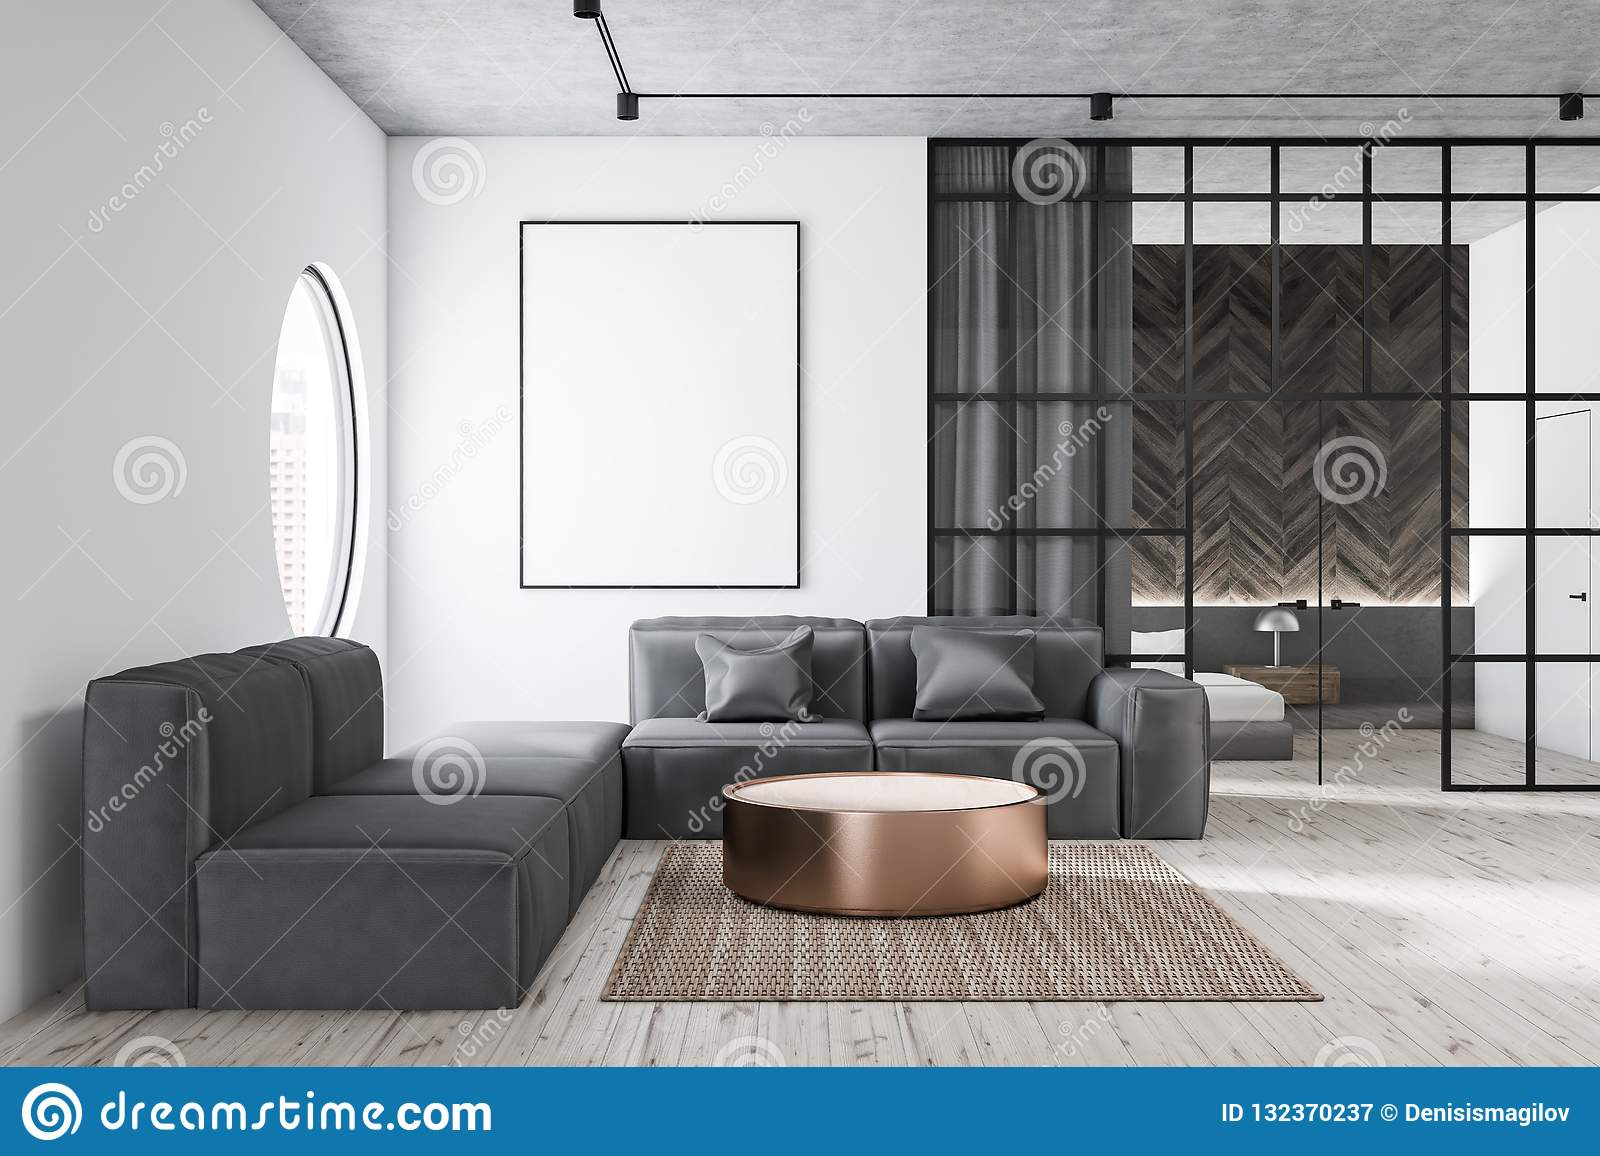 Living Room With Gray Sofa And Poster Stock Illustration